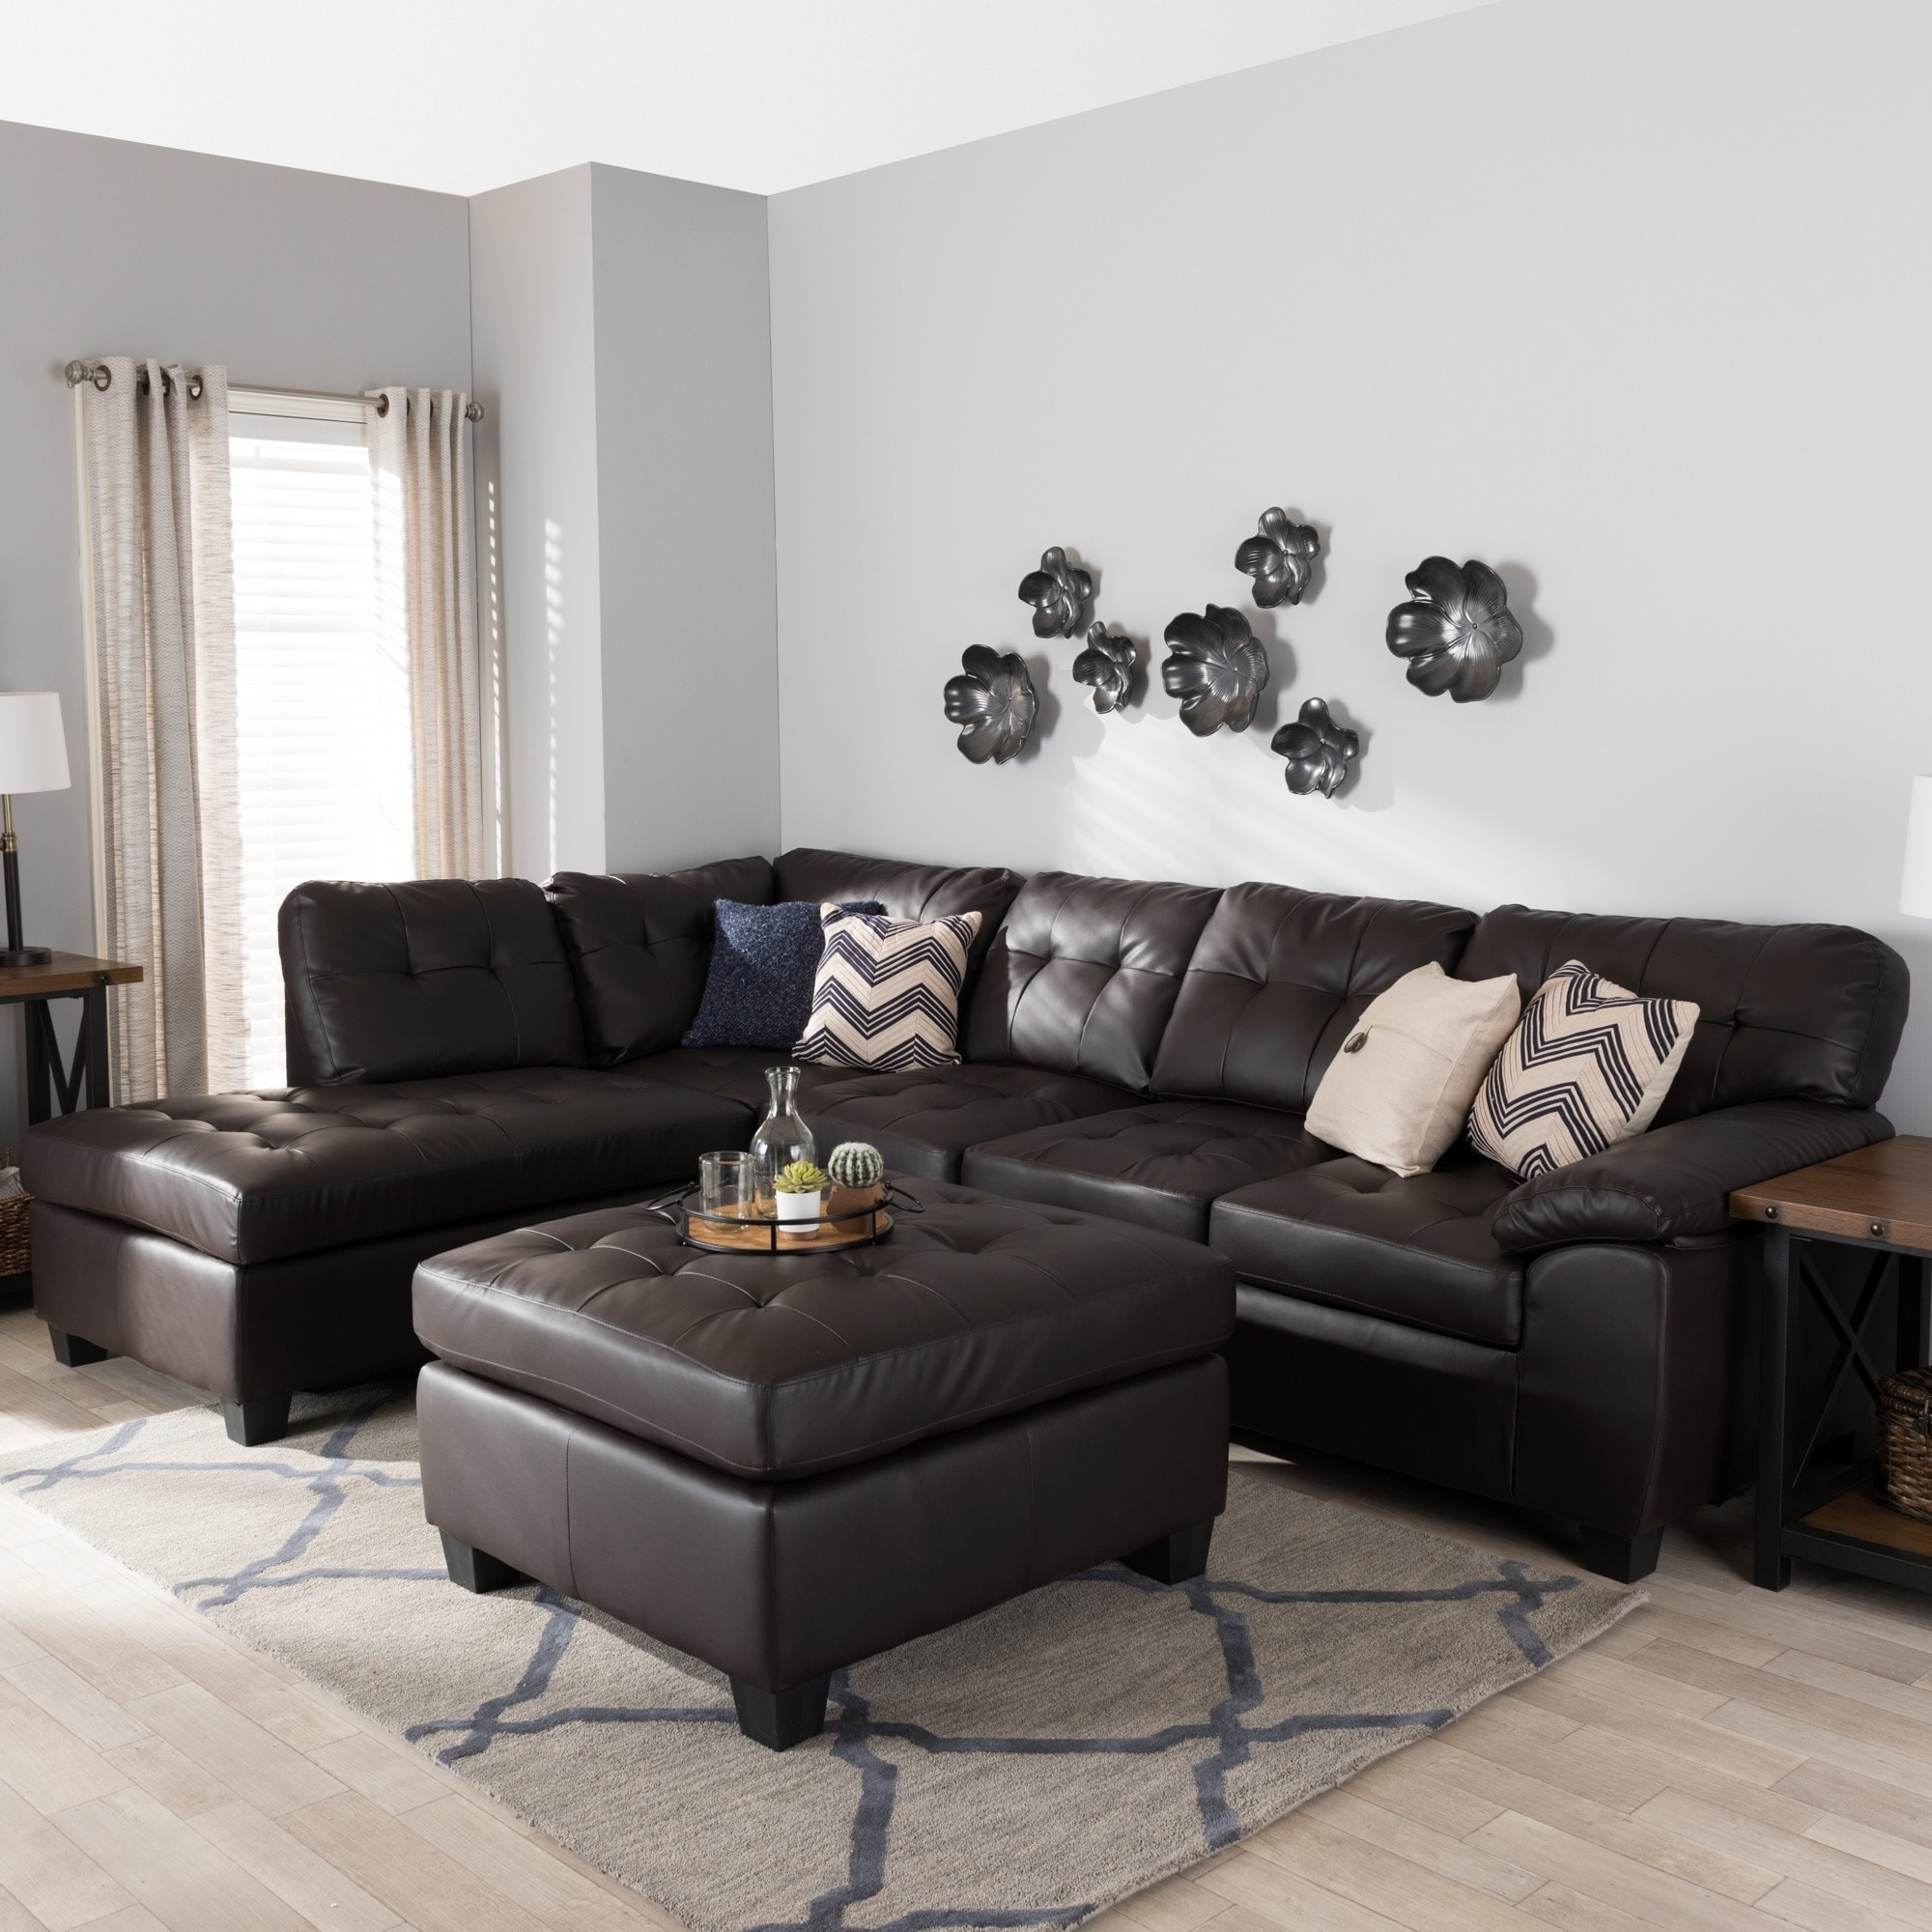 Best And Newest Baxton Studio 'mario' Brown Leather Sectional Sofa With Ottoman Inside Leather Sectionals With Ottoman (View 3 of 20)